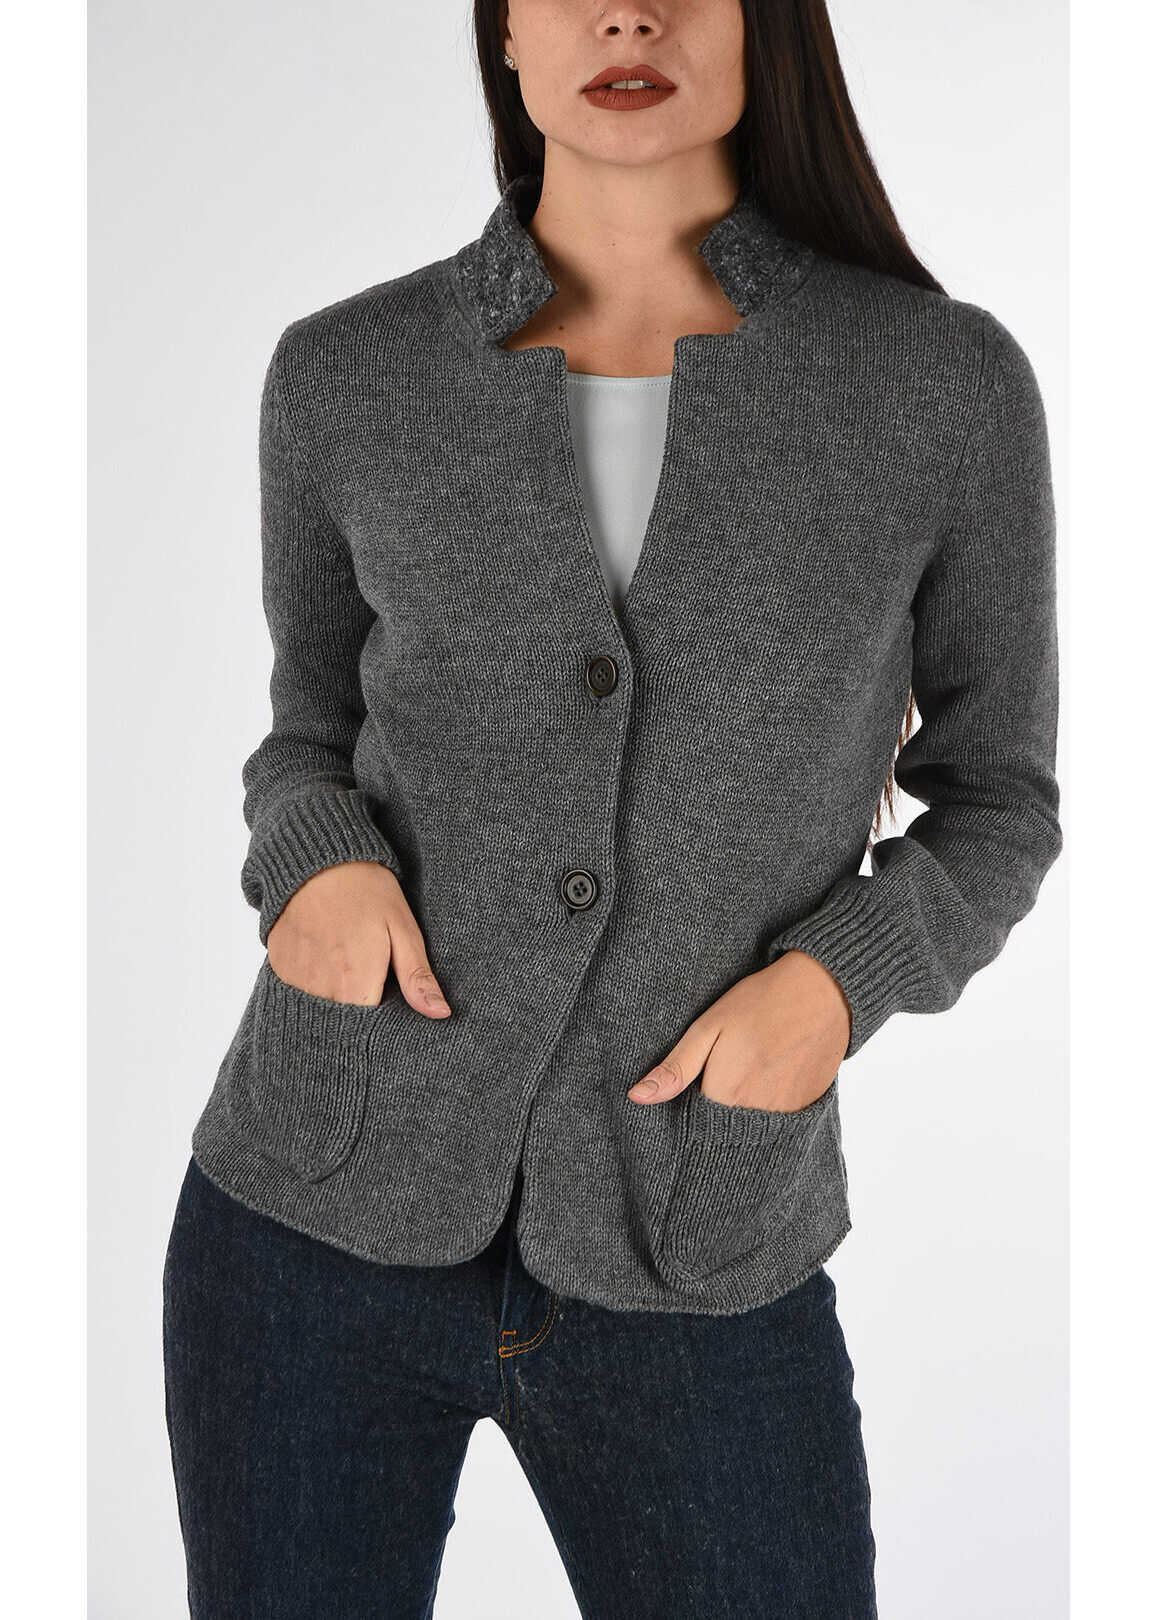 Armani COLLEZIONI Wool and Cashmere Knitted Blazer GRAY